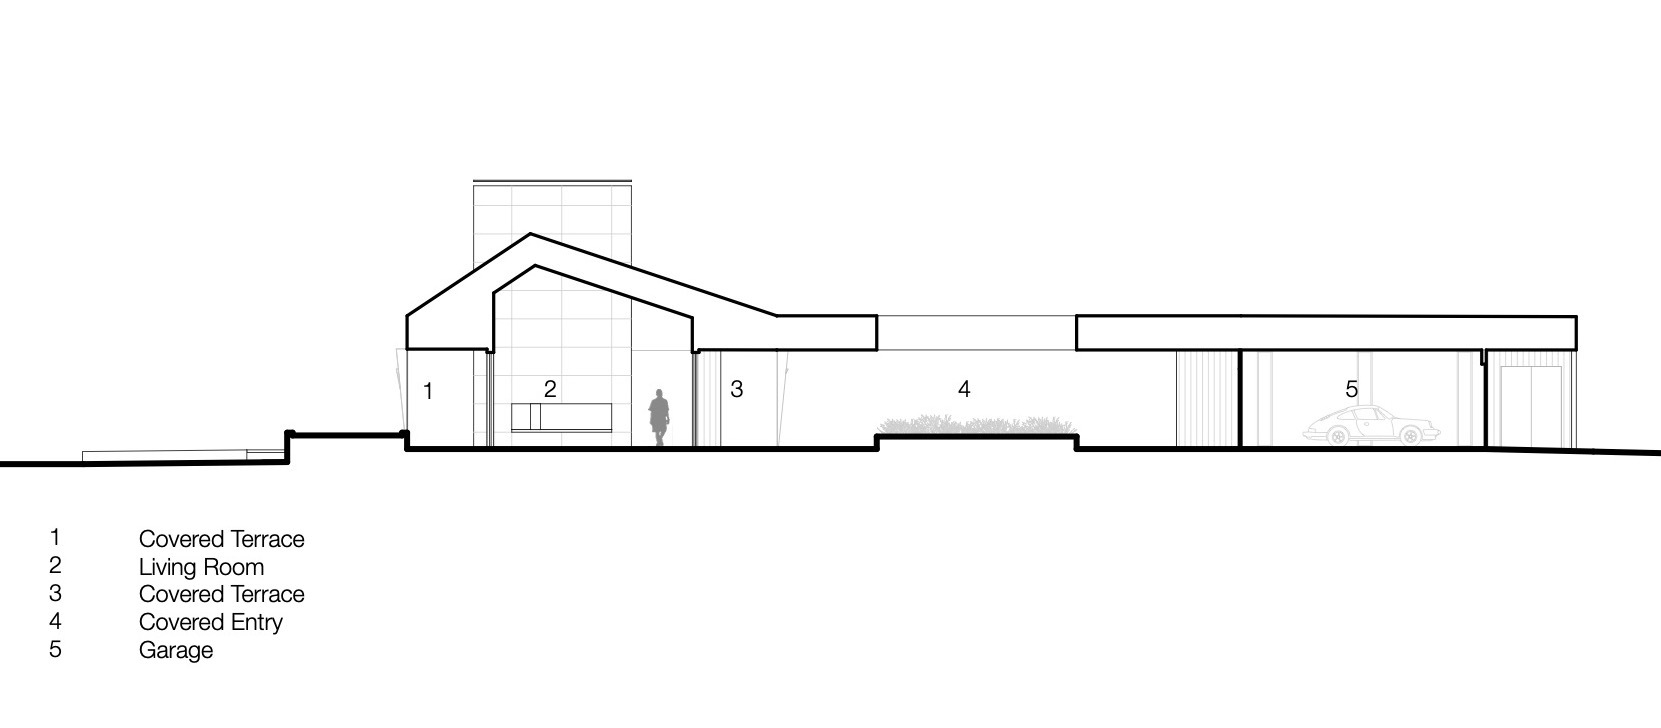 Design-plan-of-the-Dogtrot-House-by-CLG-Architects-92380